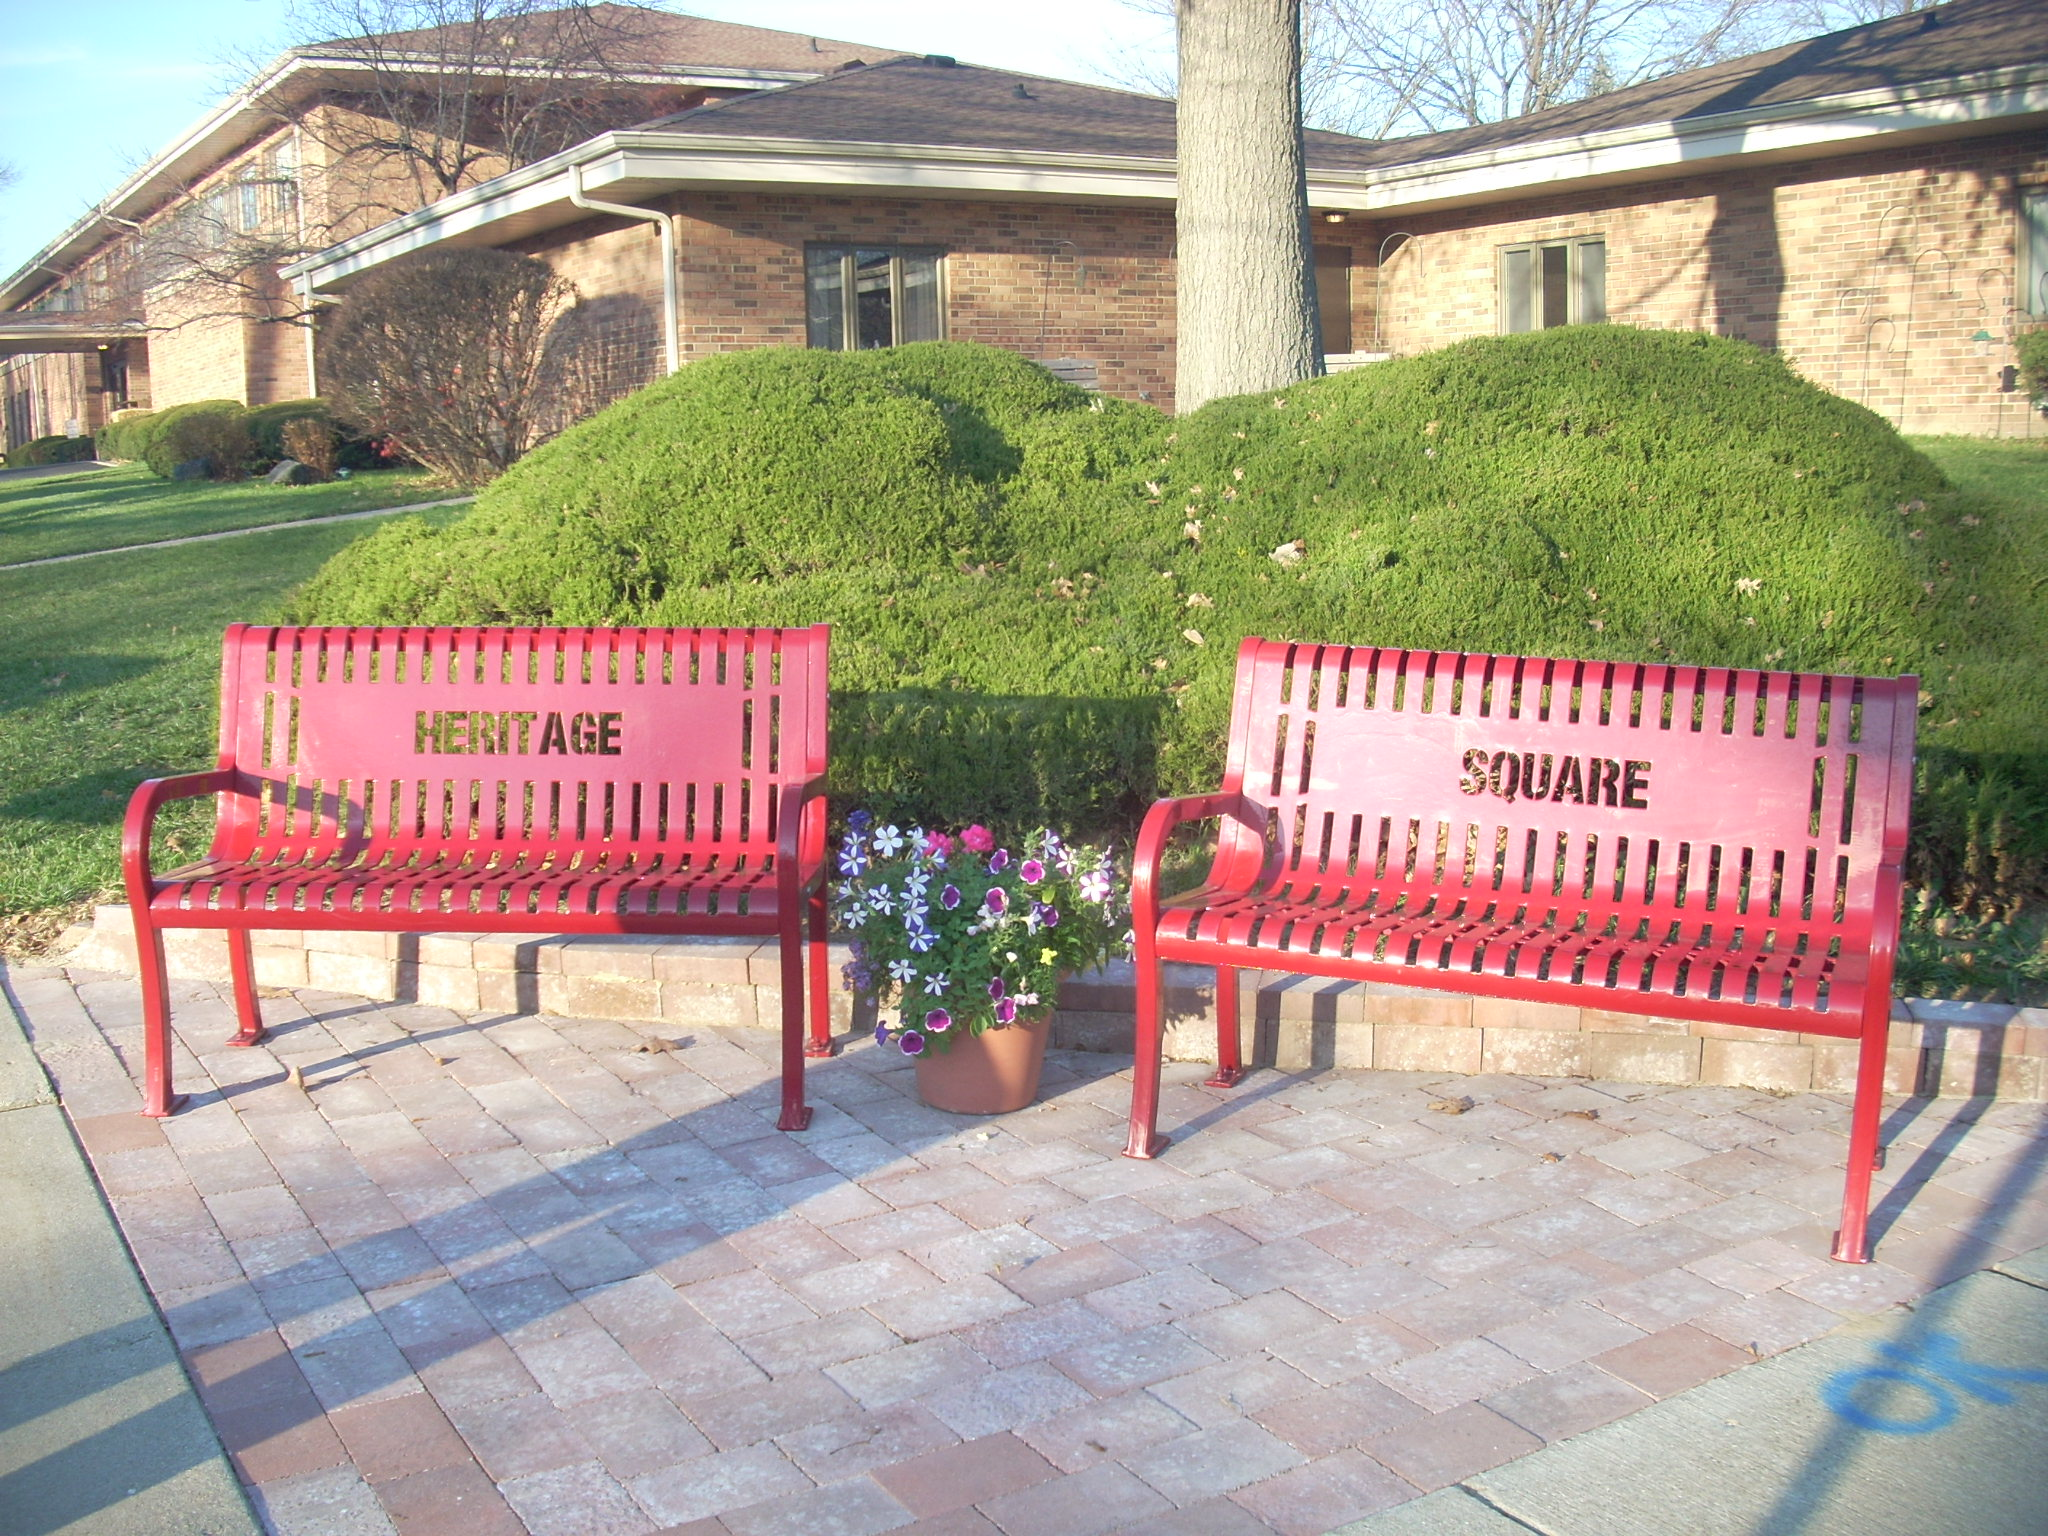 Heritage Square Benches